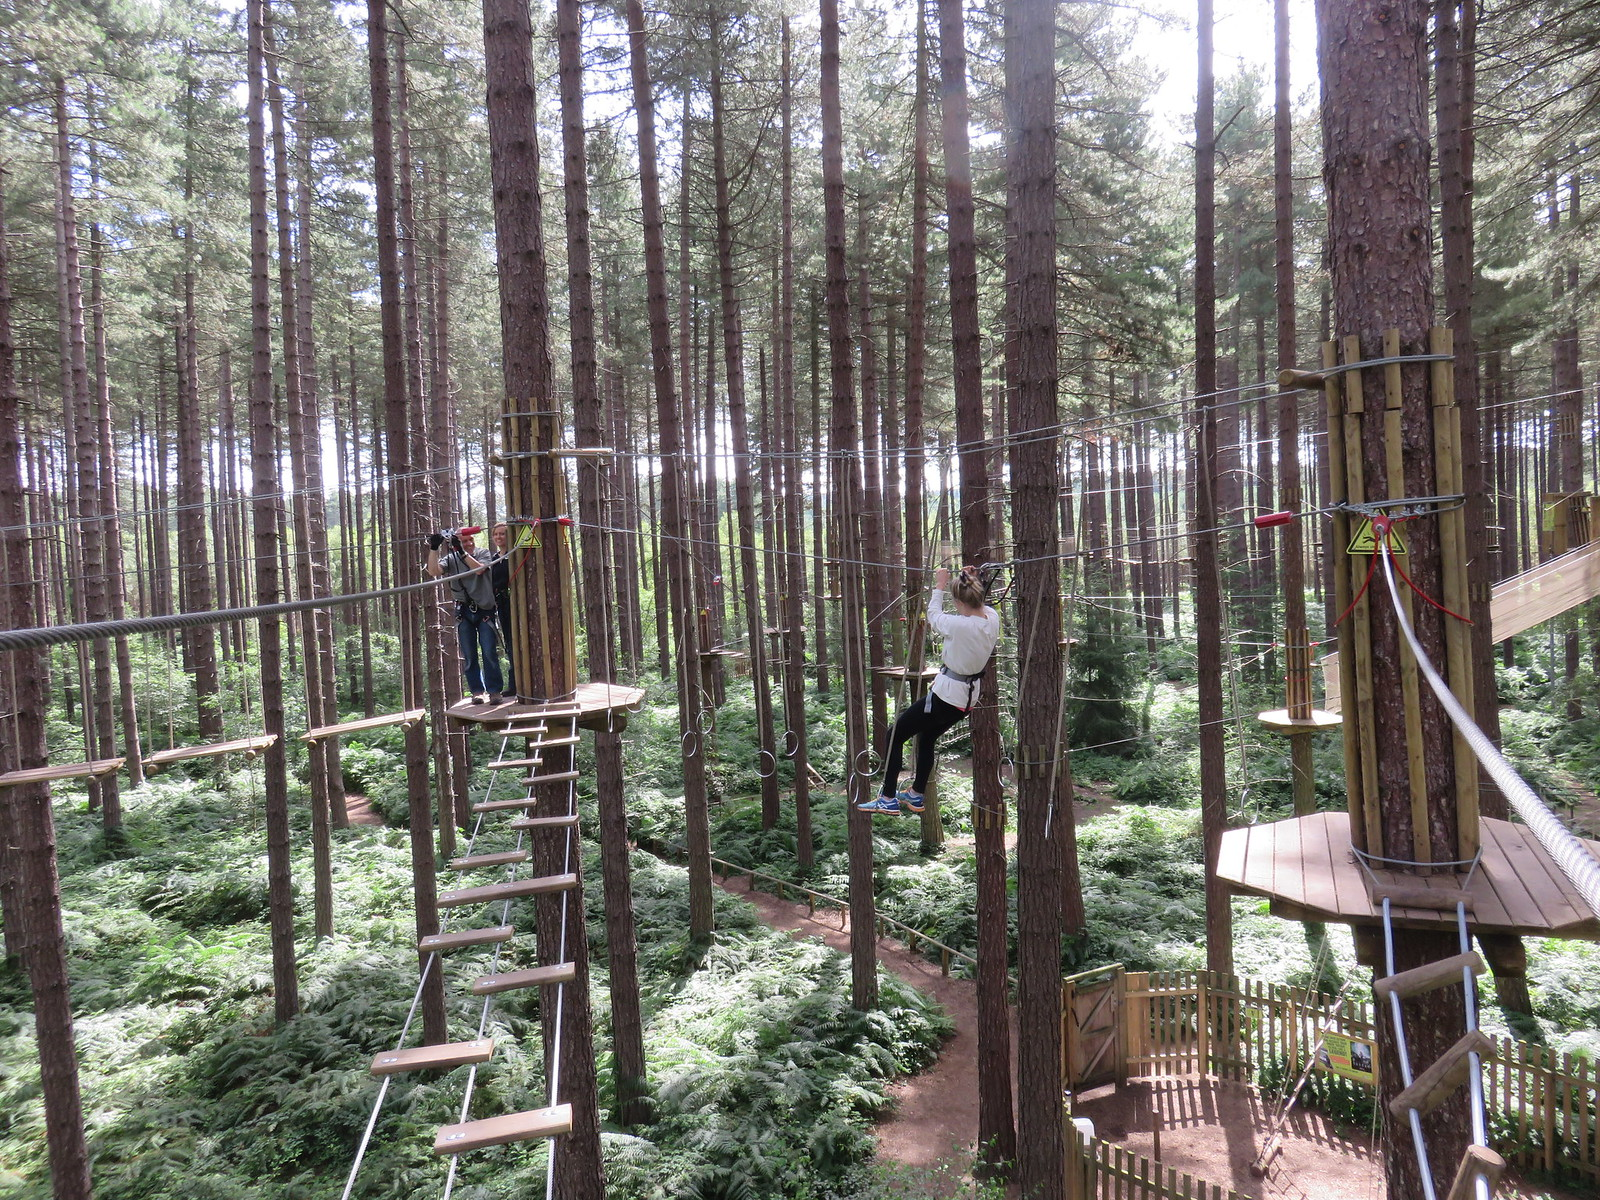 Go Ape Tree Top Adventure (A)